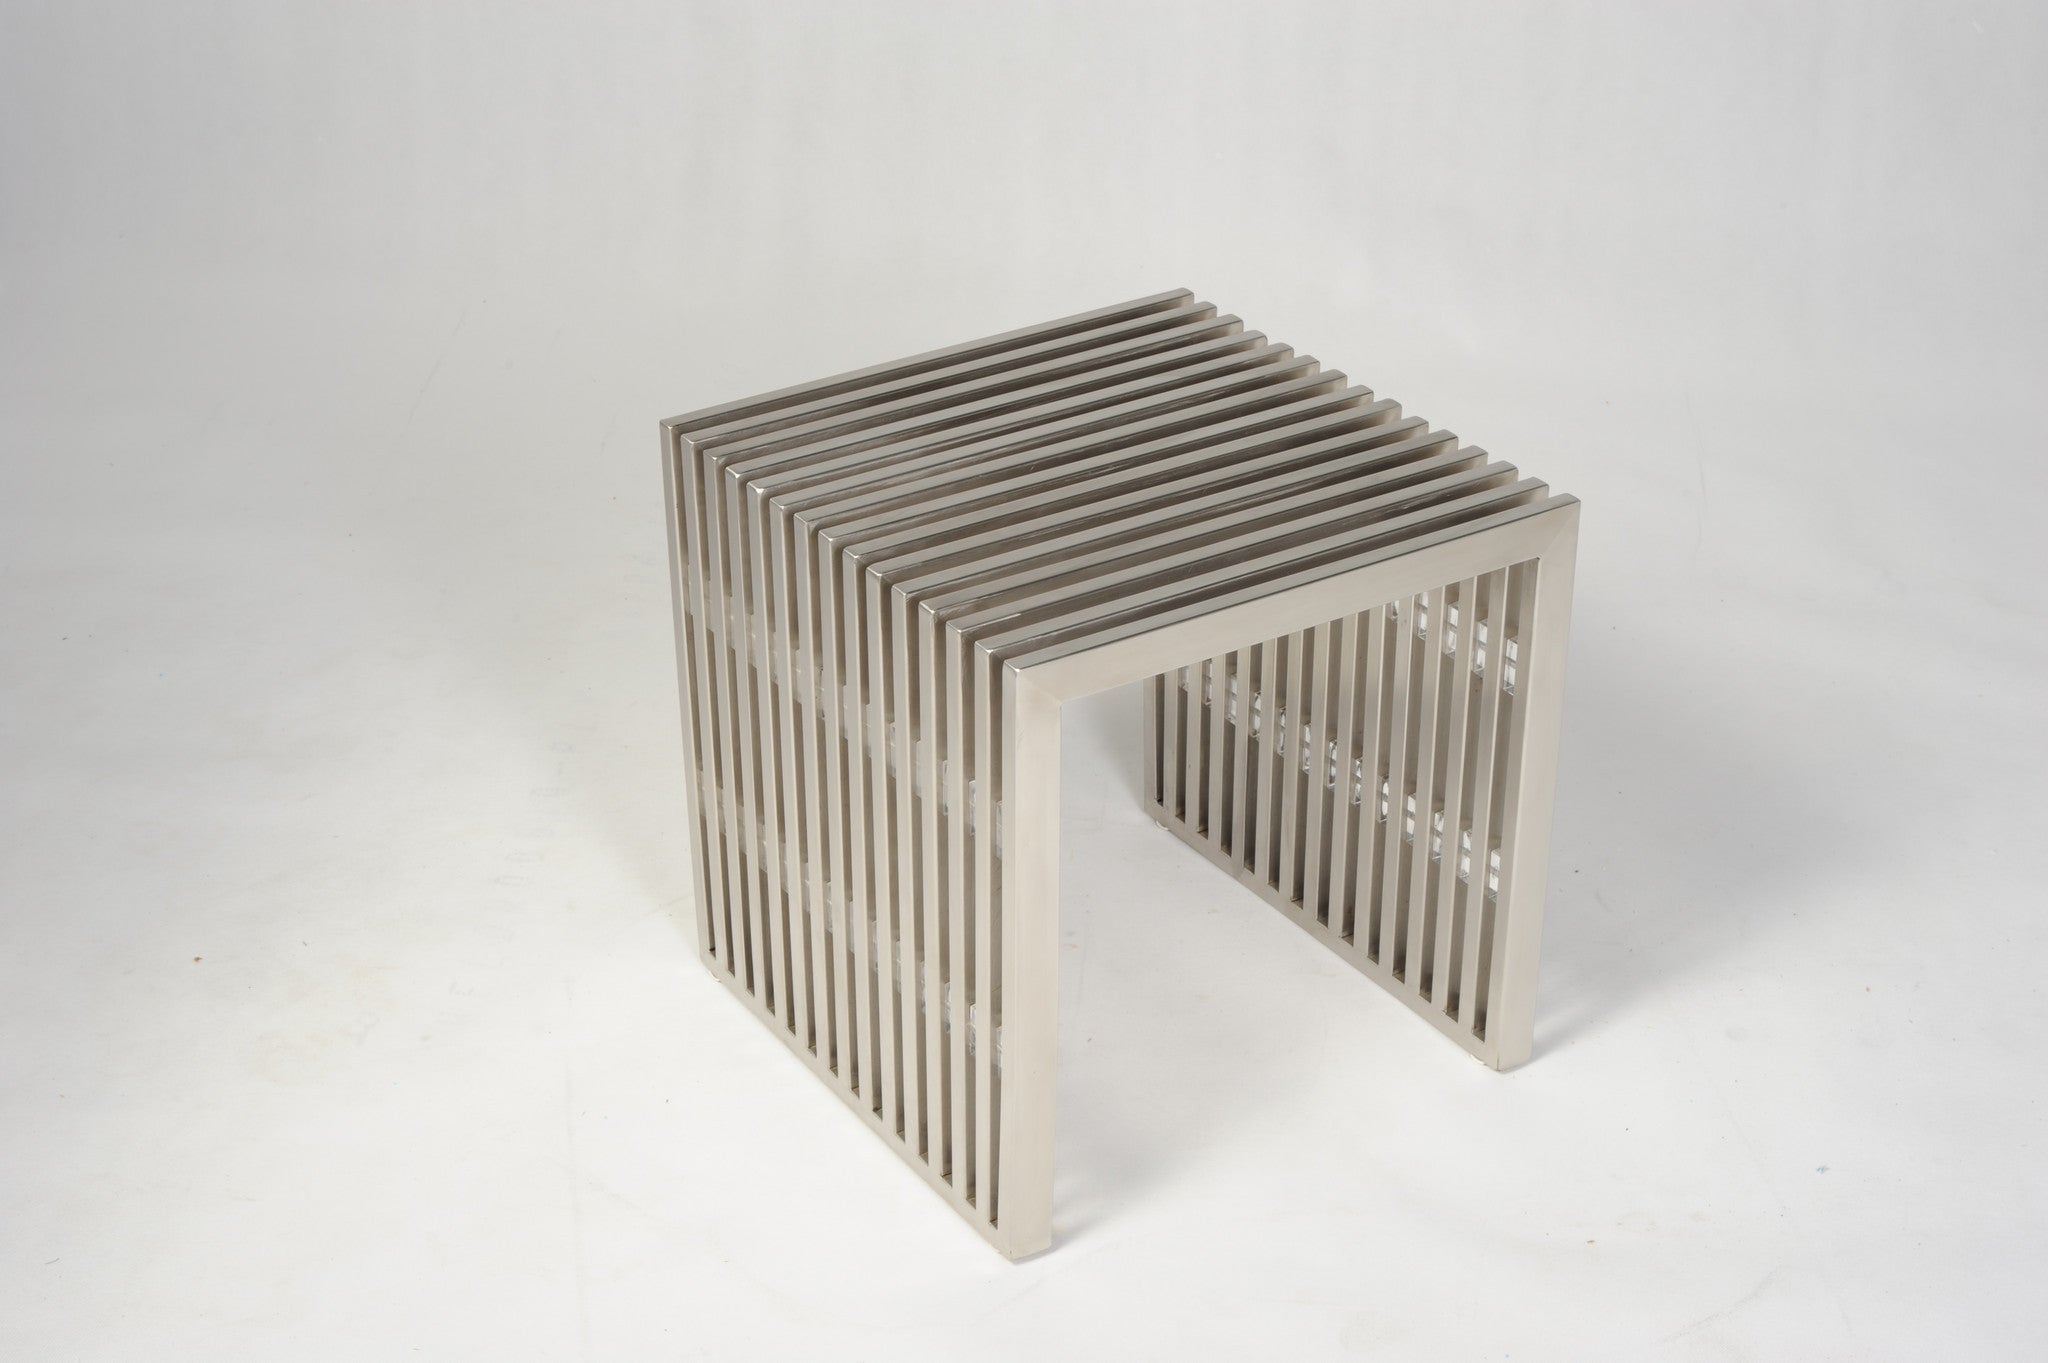 ariel stainless steel end table  mid century modern seattle  - ariel stainless steel end table  the modern source